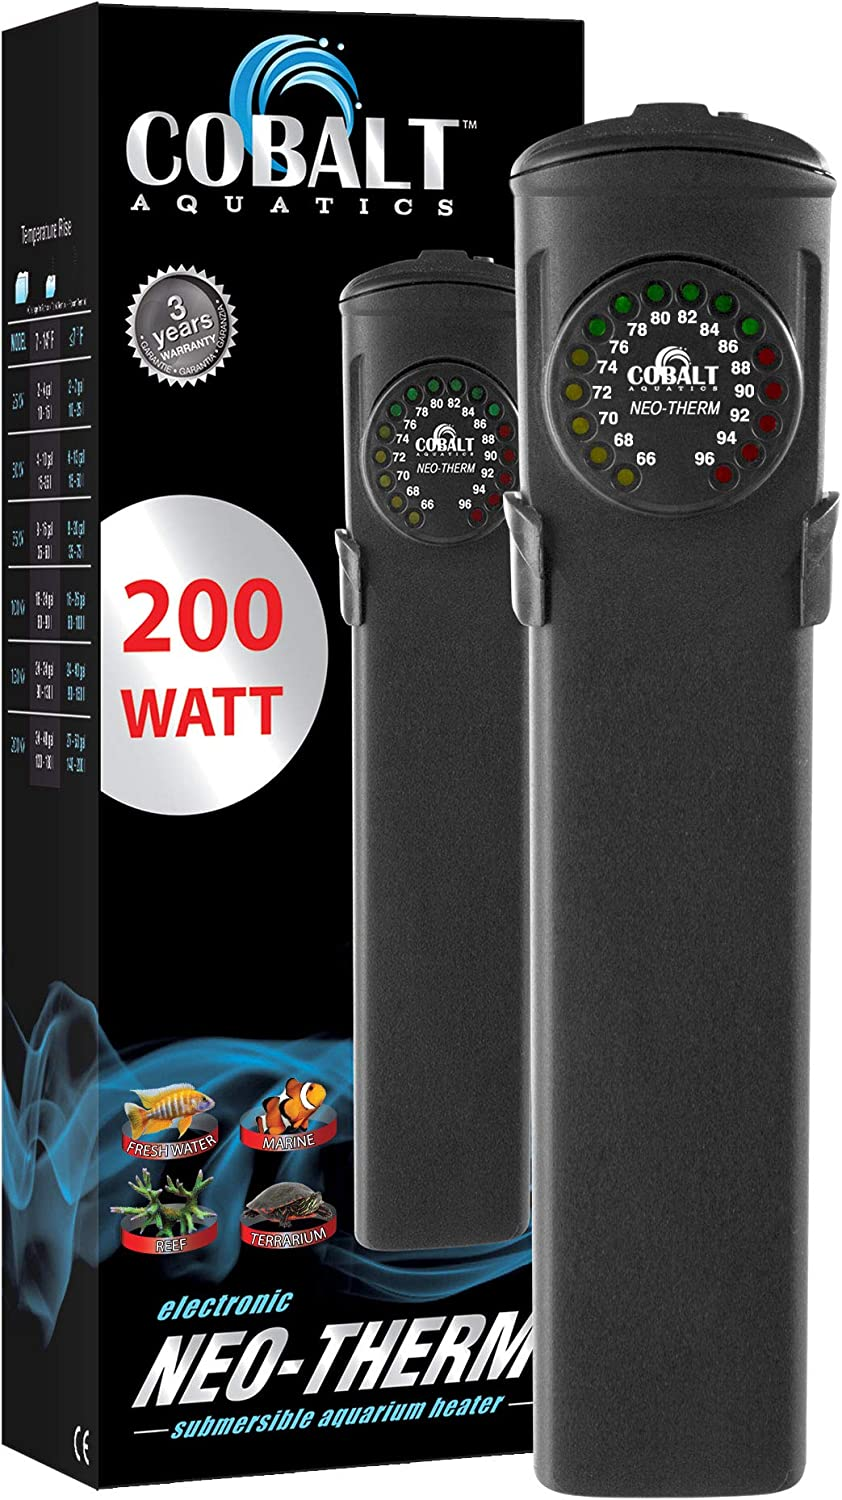 Cobalt Neo-Therm Best Aquarium Heater